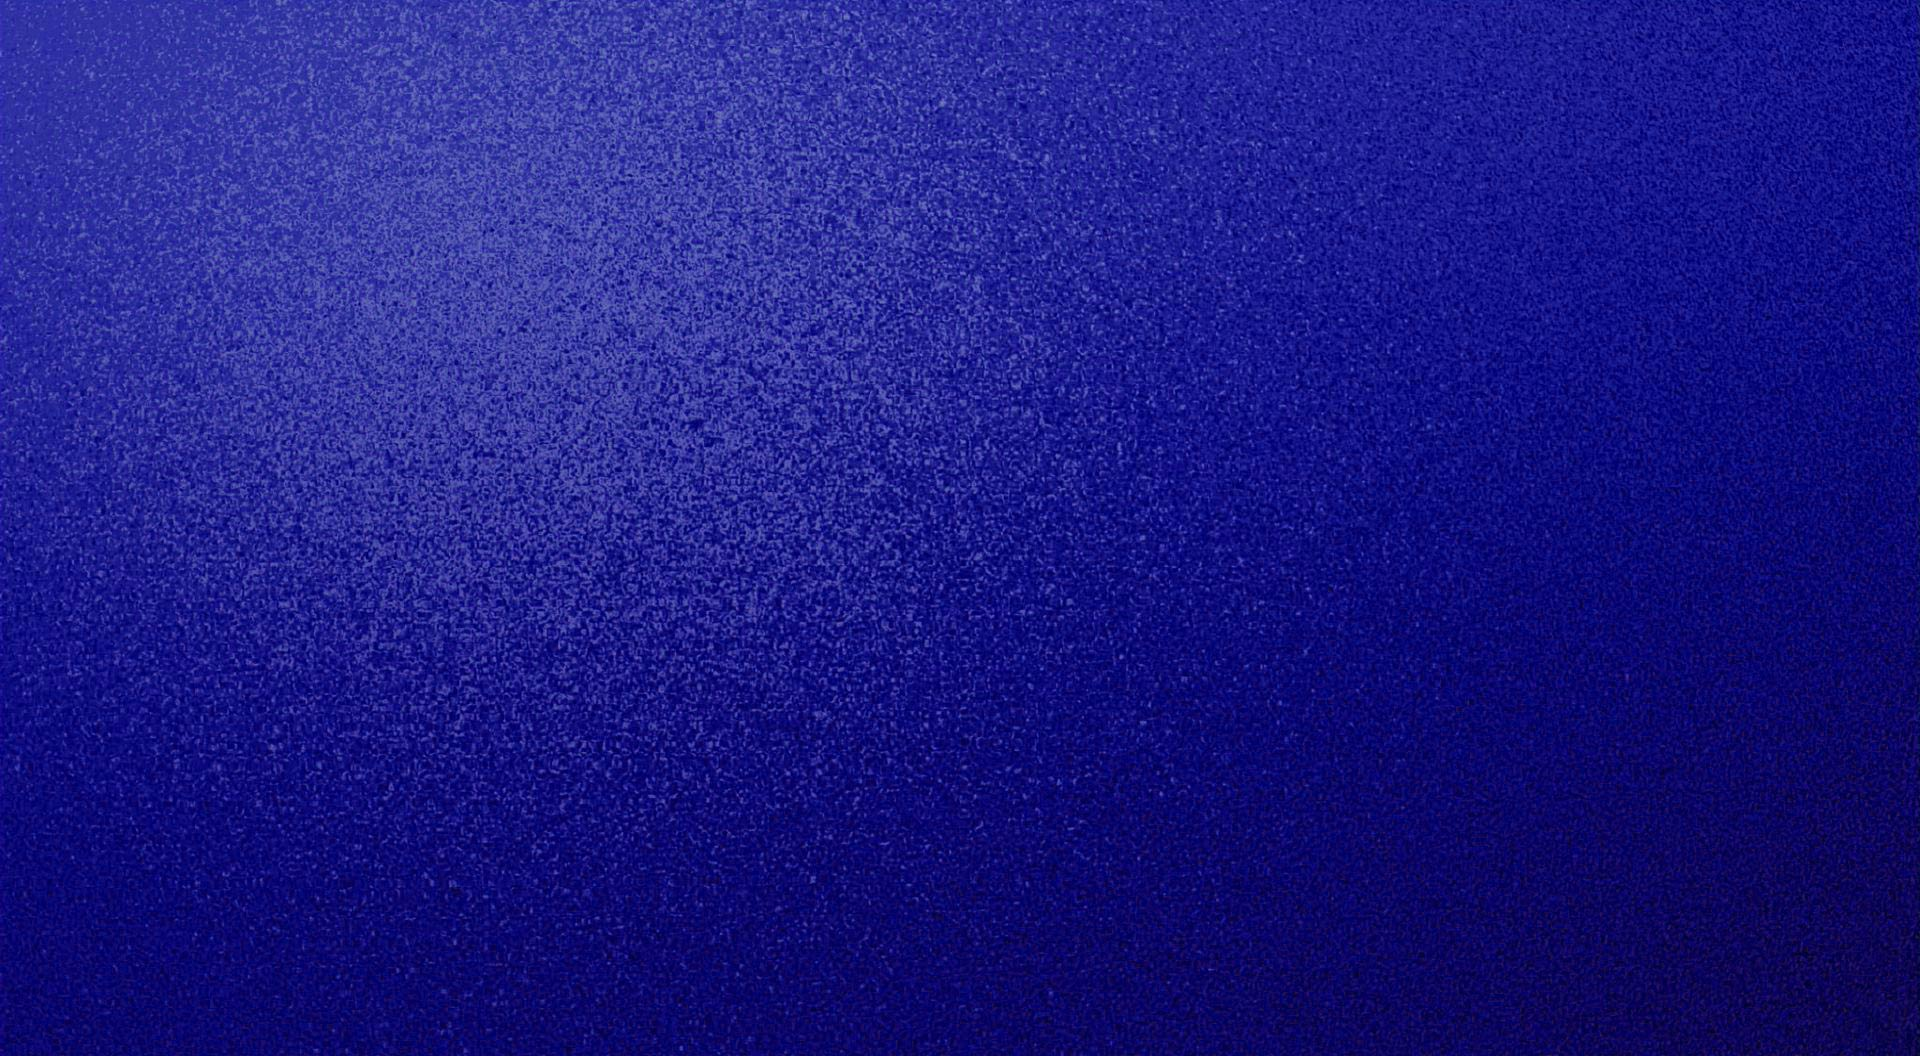 Dark Blue Backgrounds 1920x1056